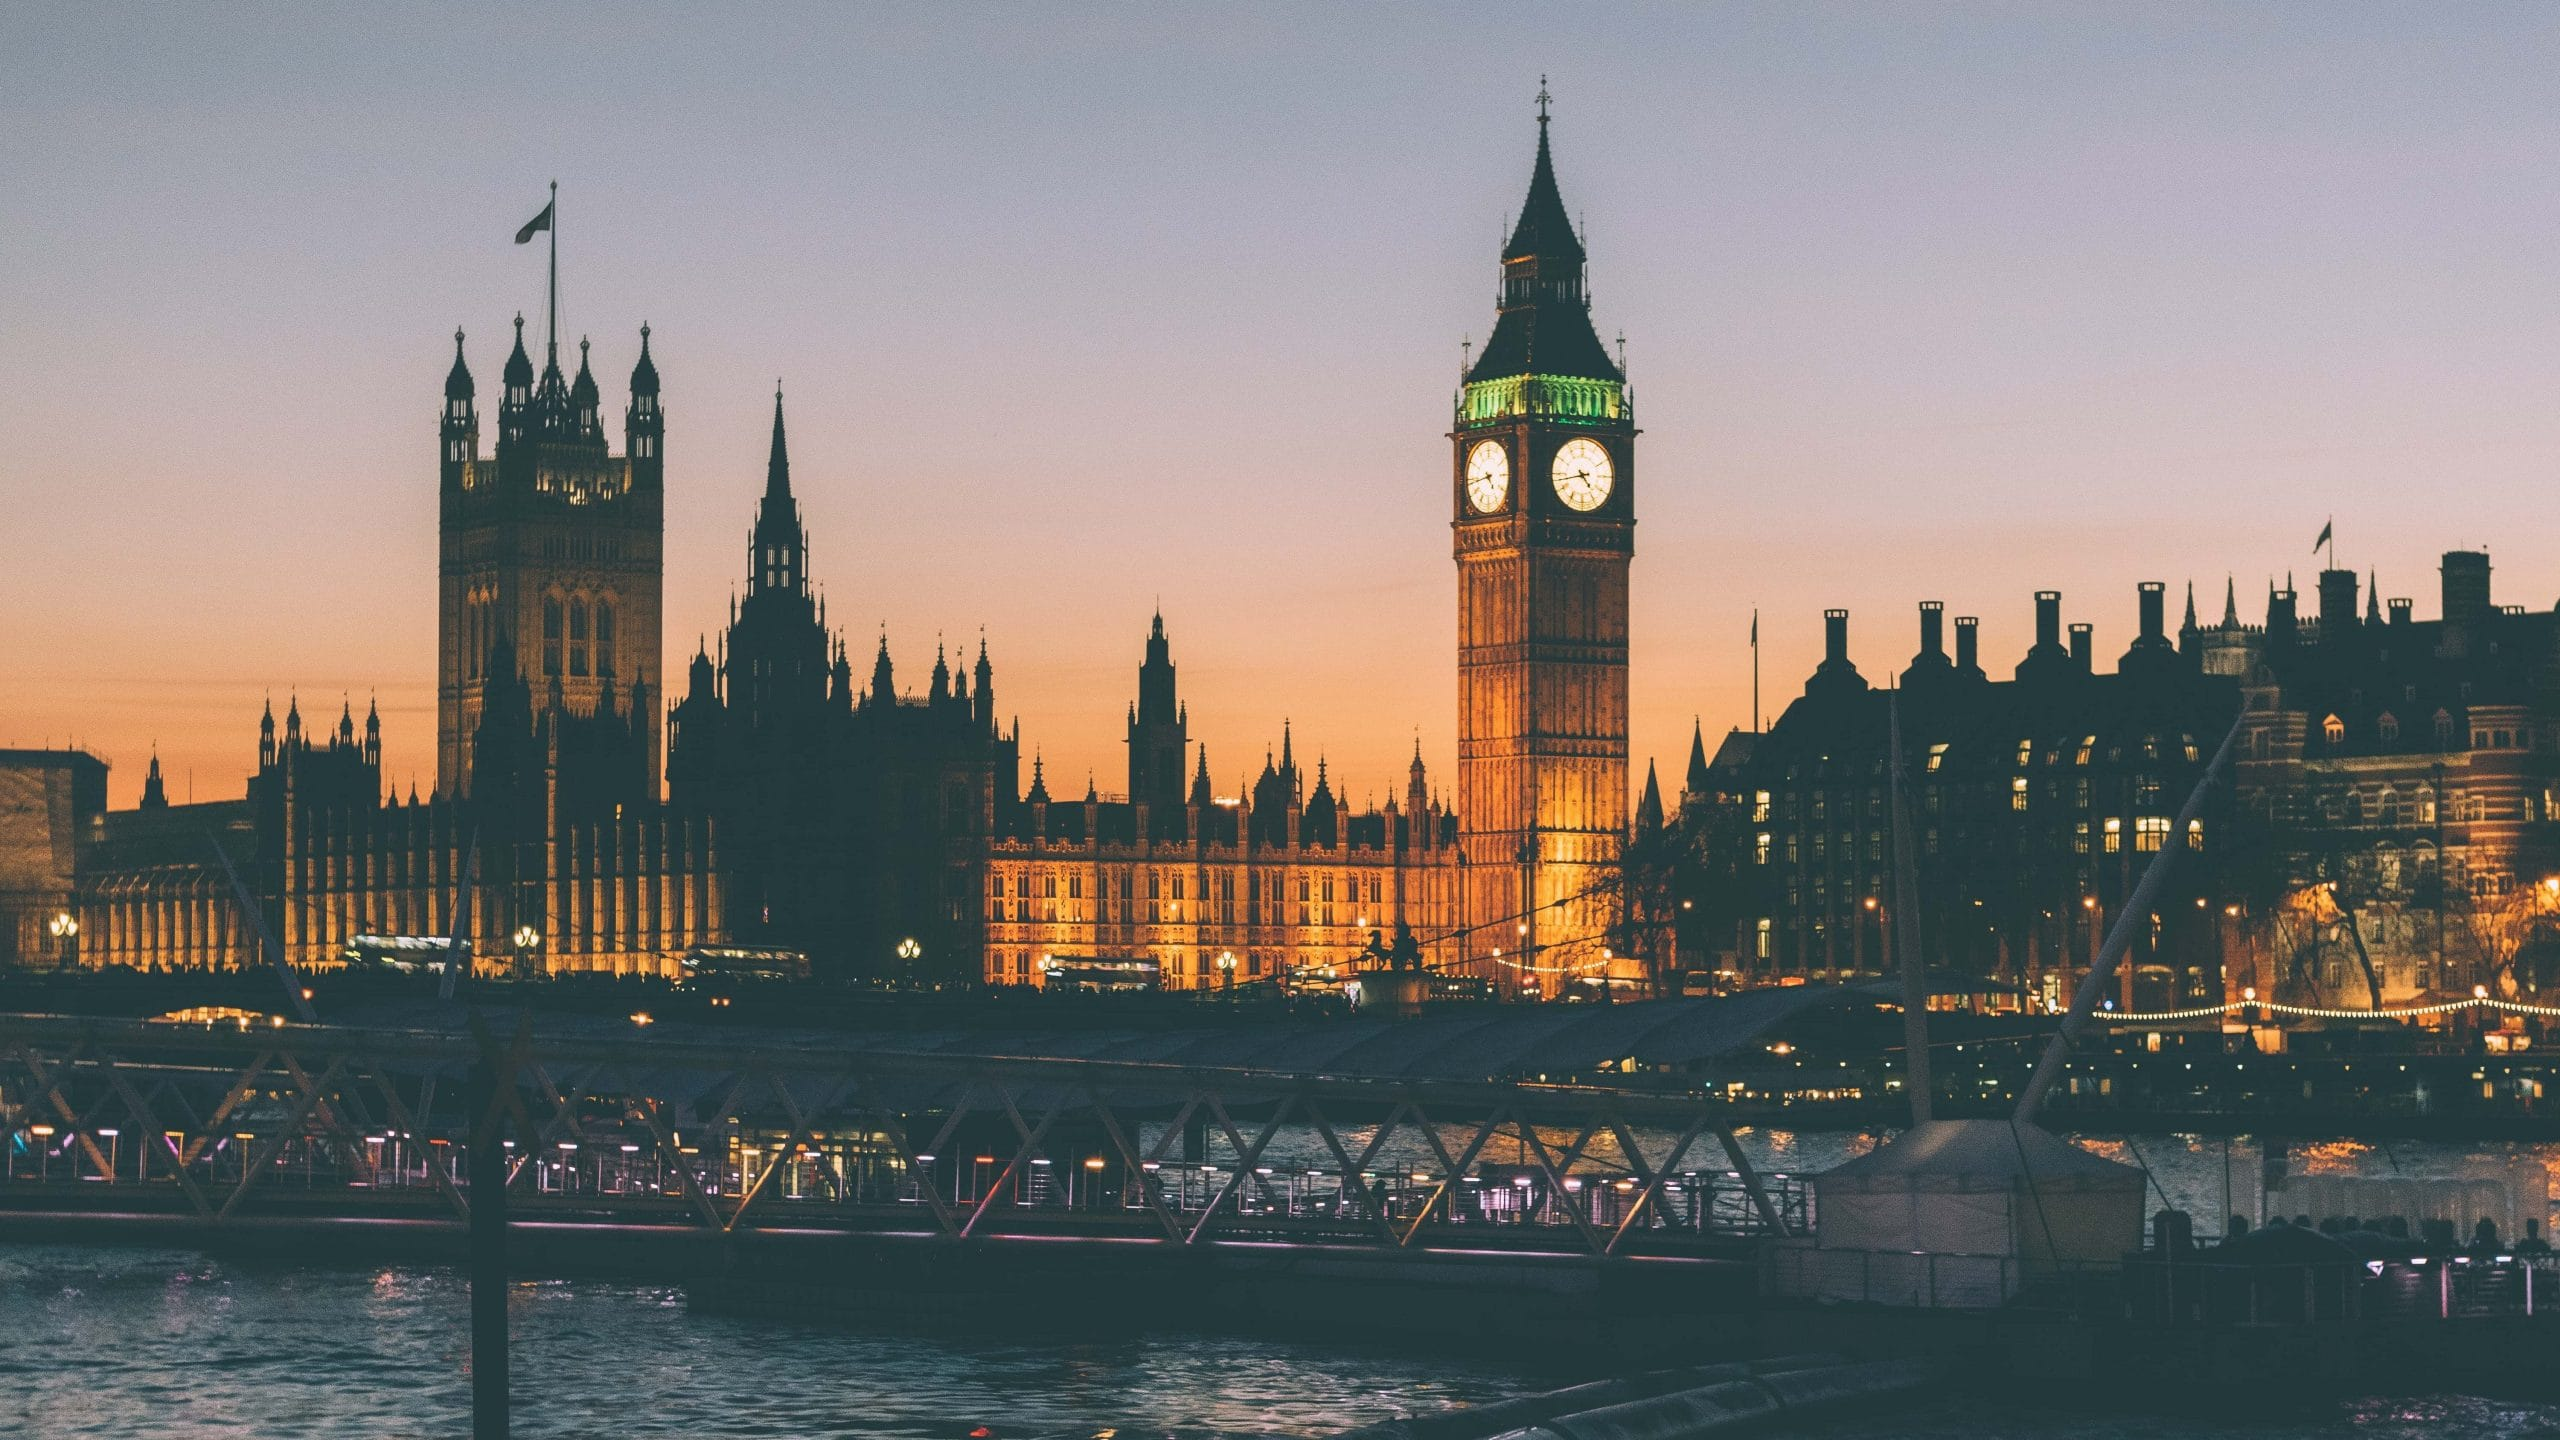 Big Ben and Houses of Parliament Famous London Landmarks